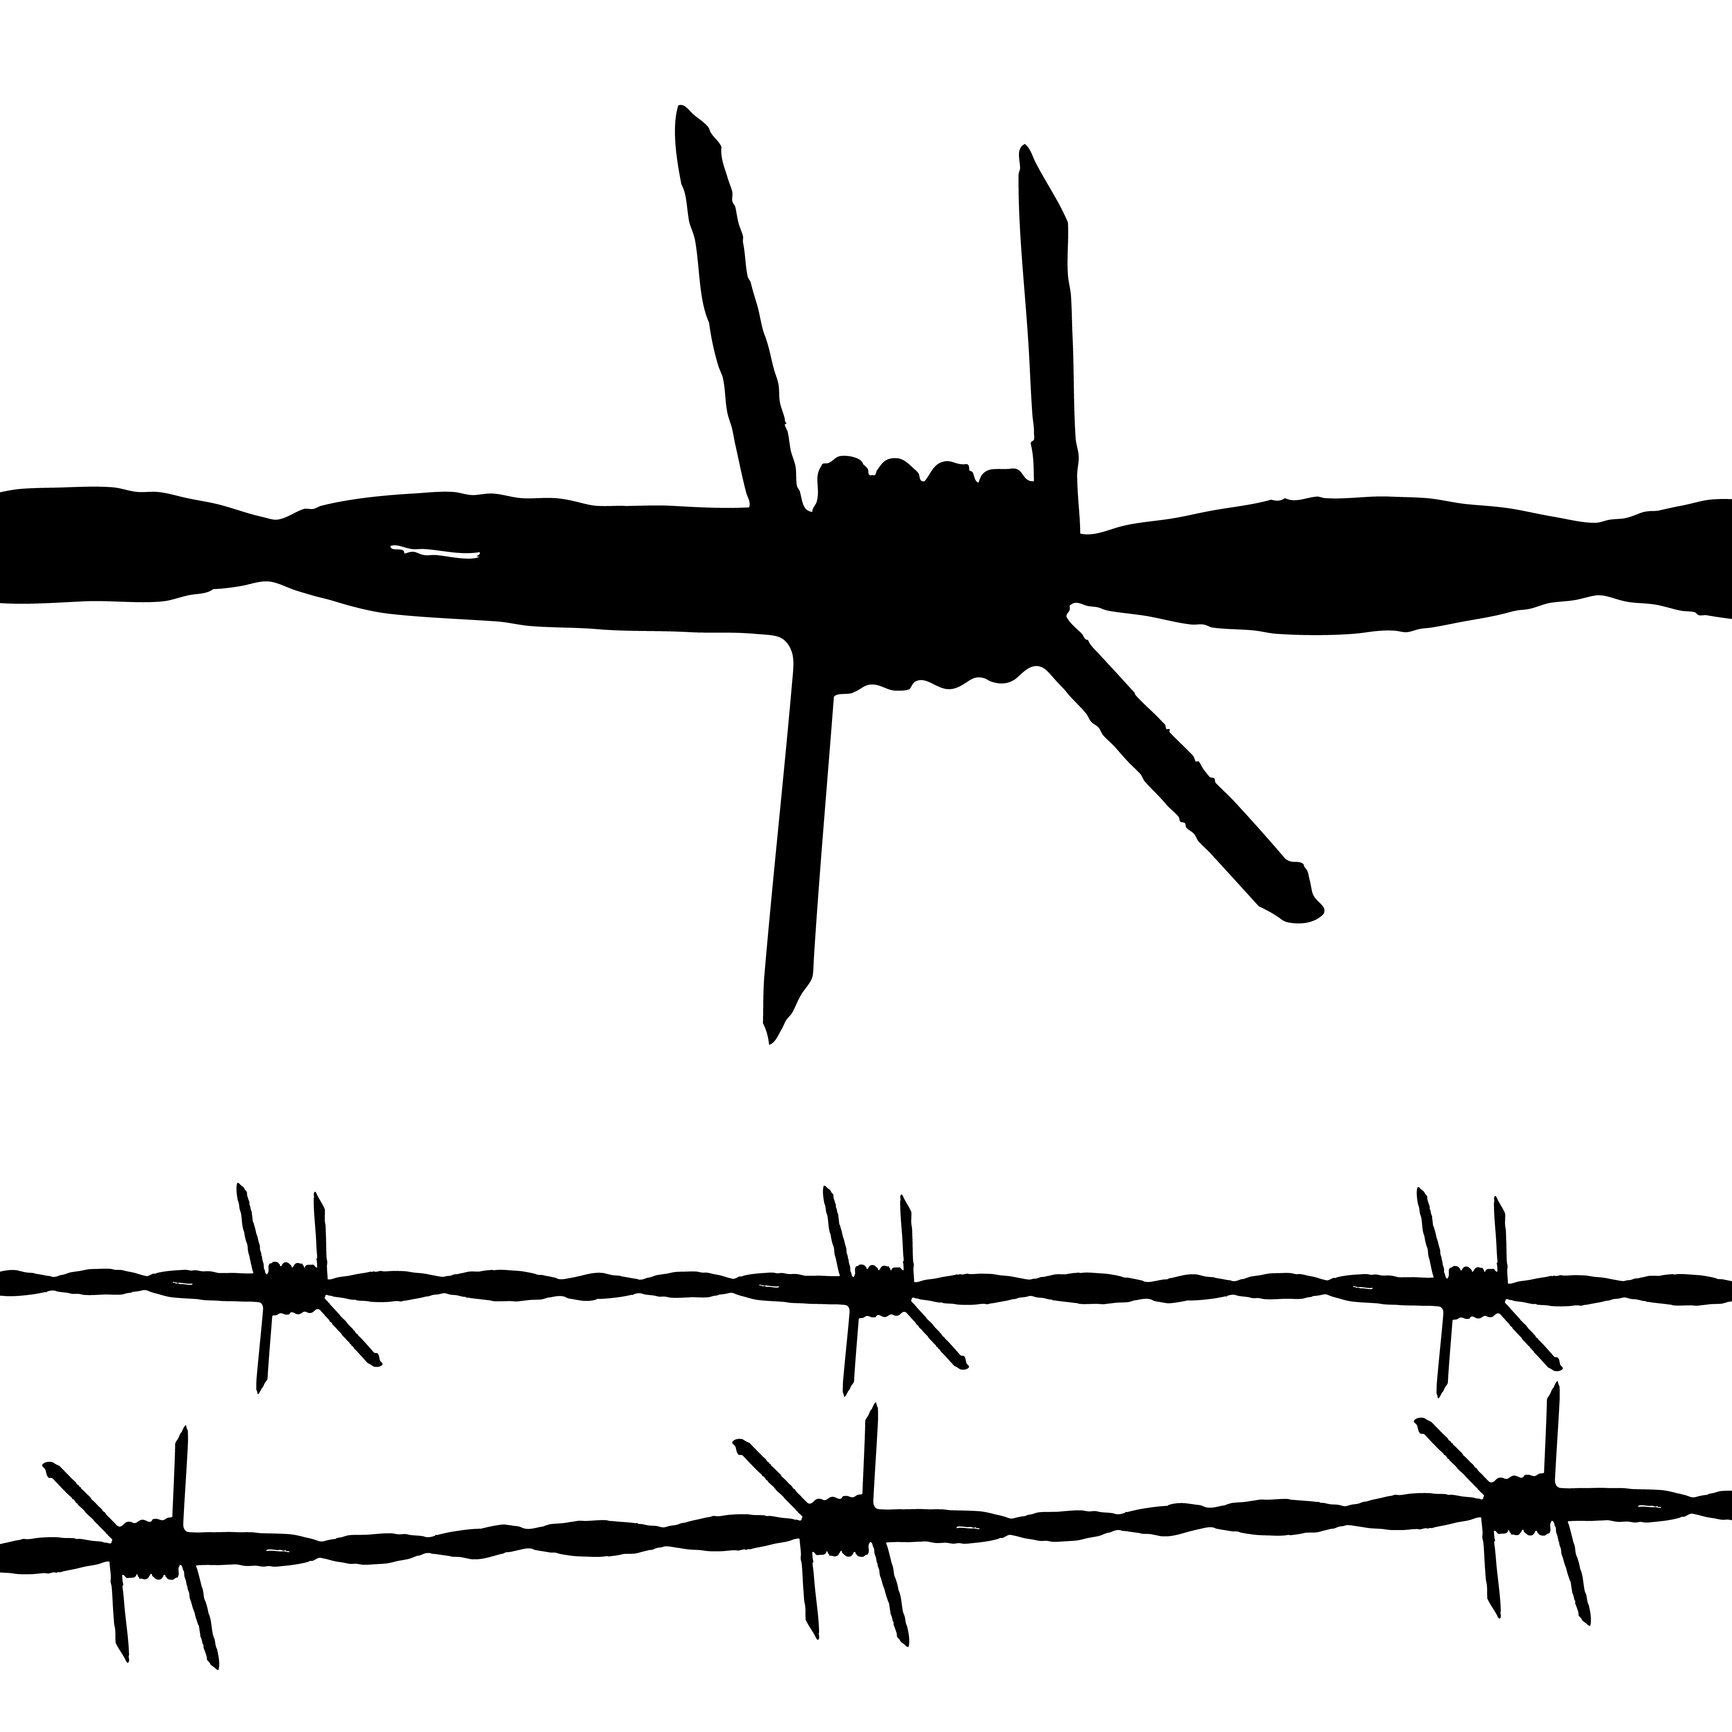 Barb wire clipart thorn. Free download clip art